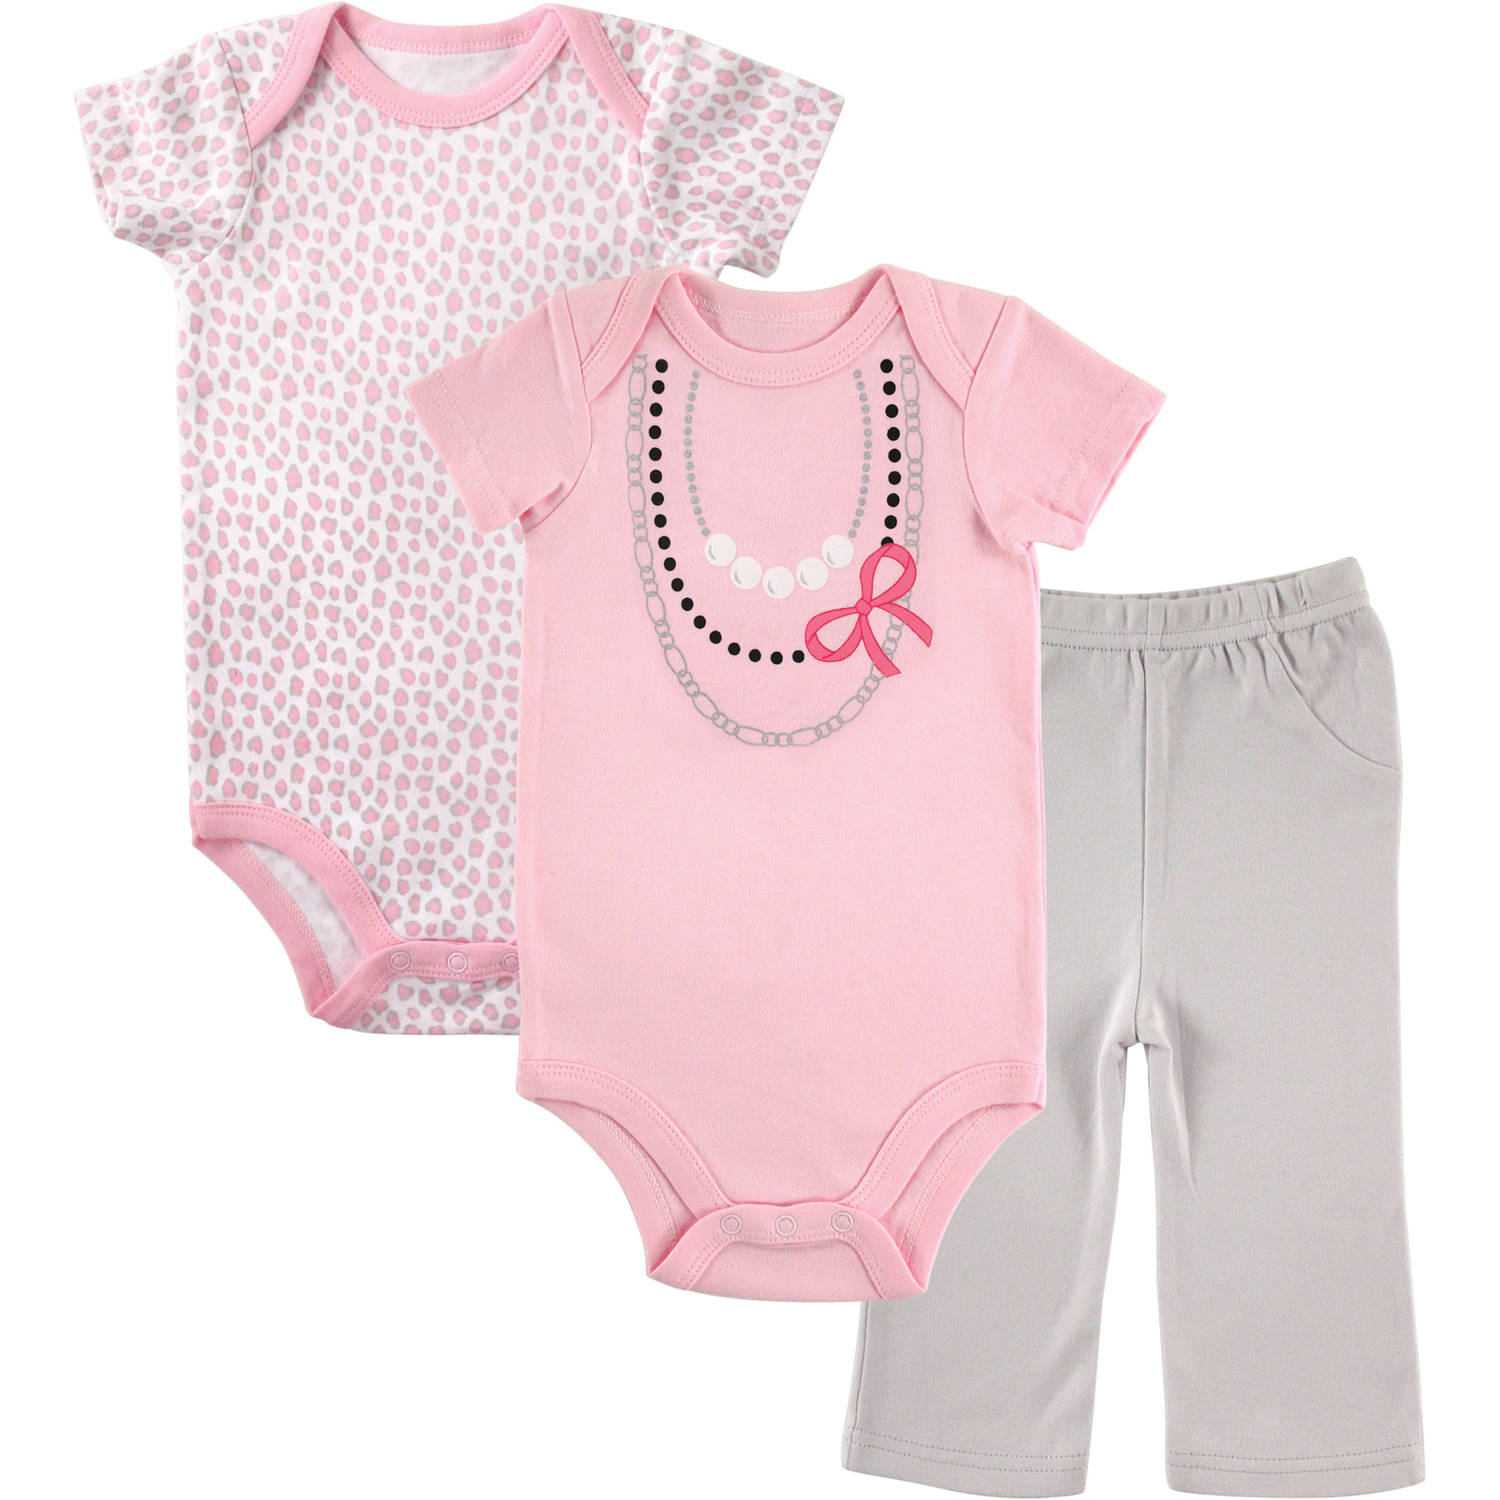 Luvable Friends Newborn Baby Girls 2 Bodysuit and Pants Set, Necklace